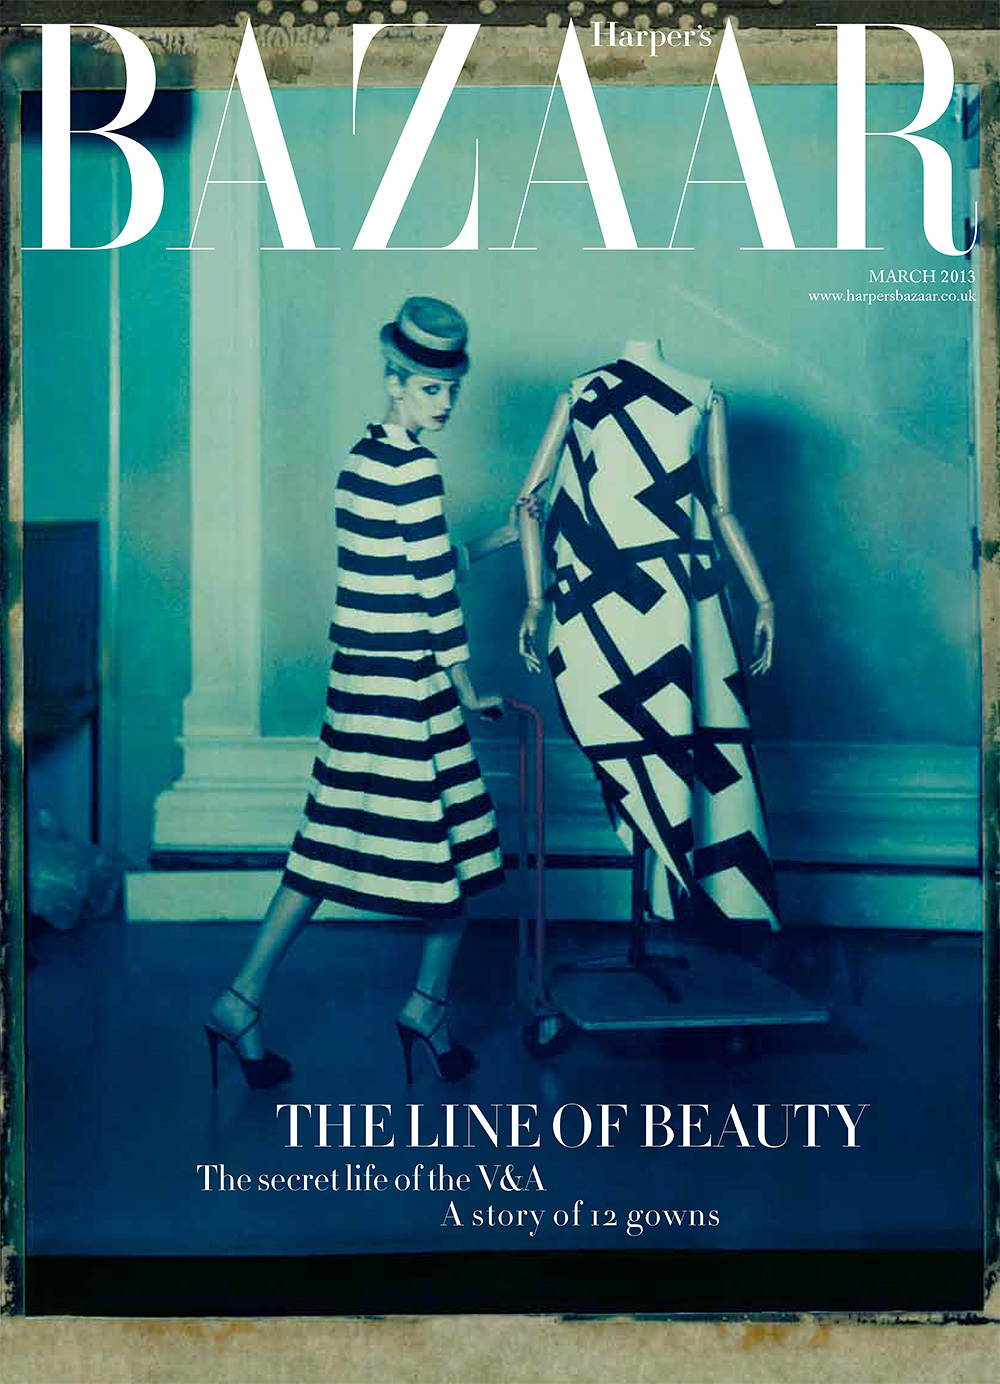 harpers-bazaar-v-and-a-covers-03